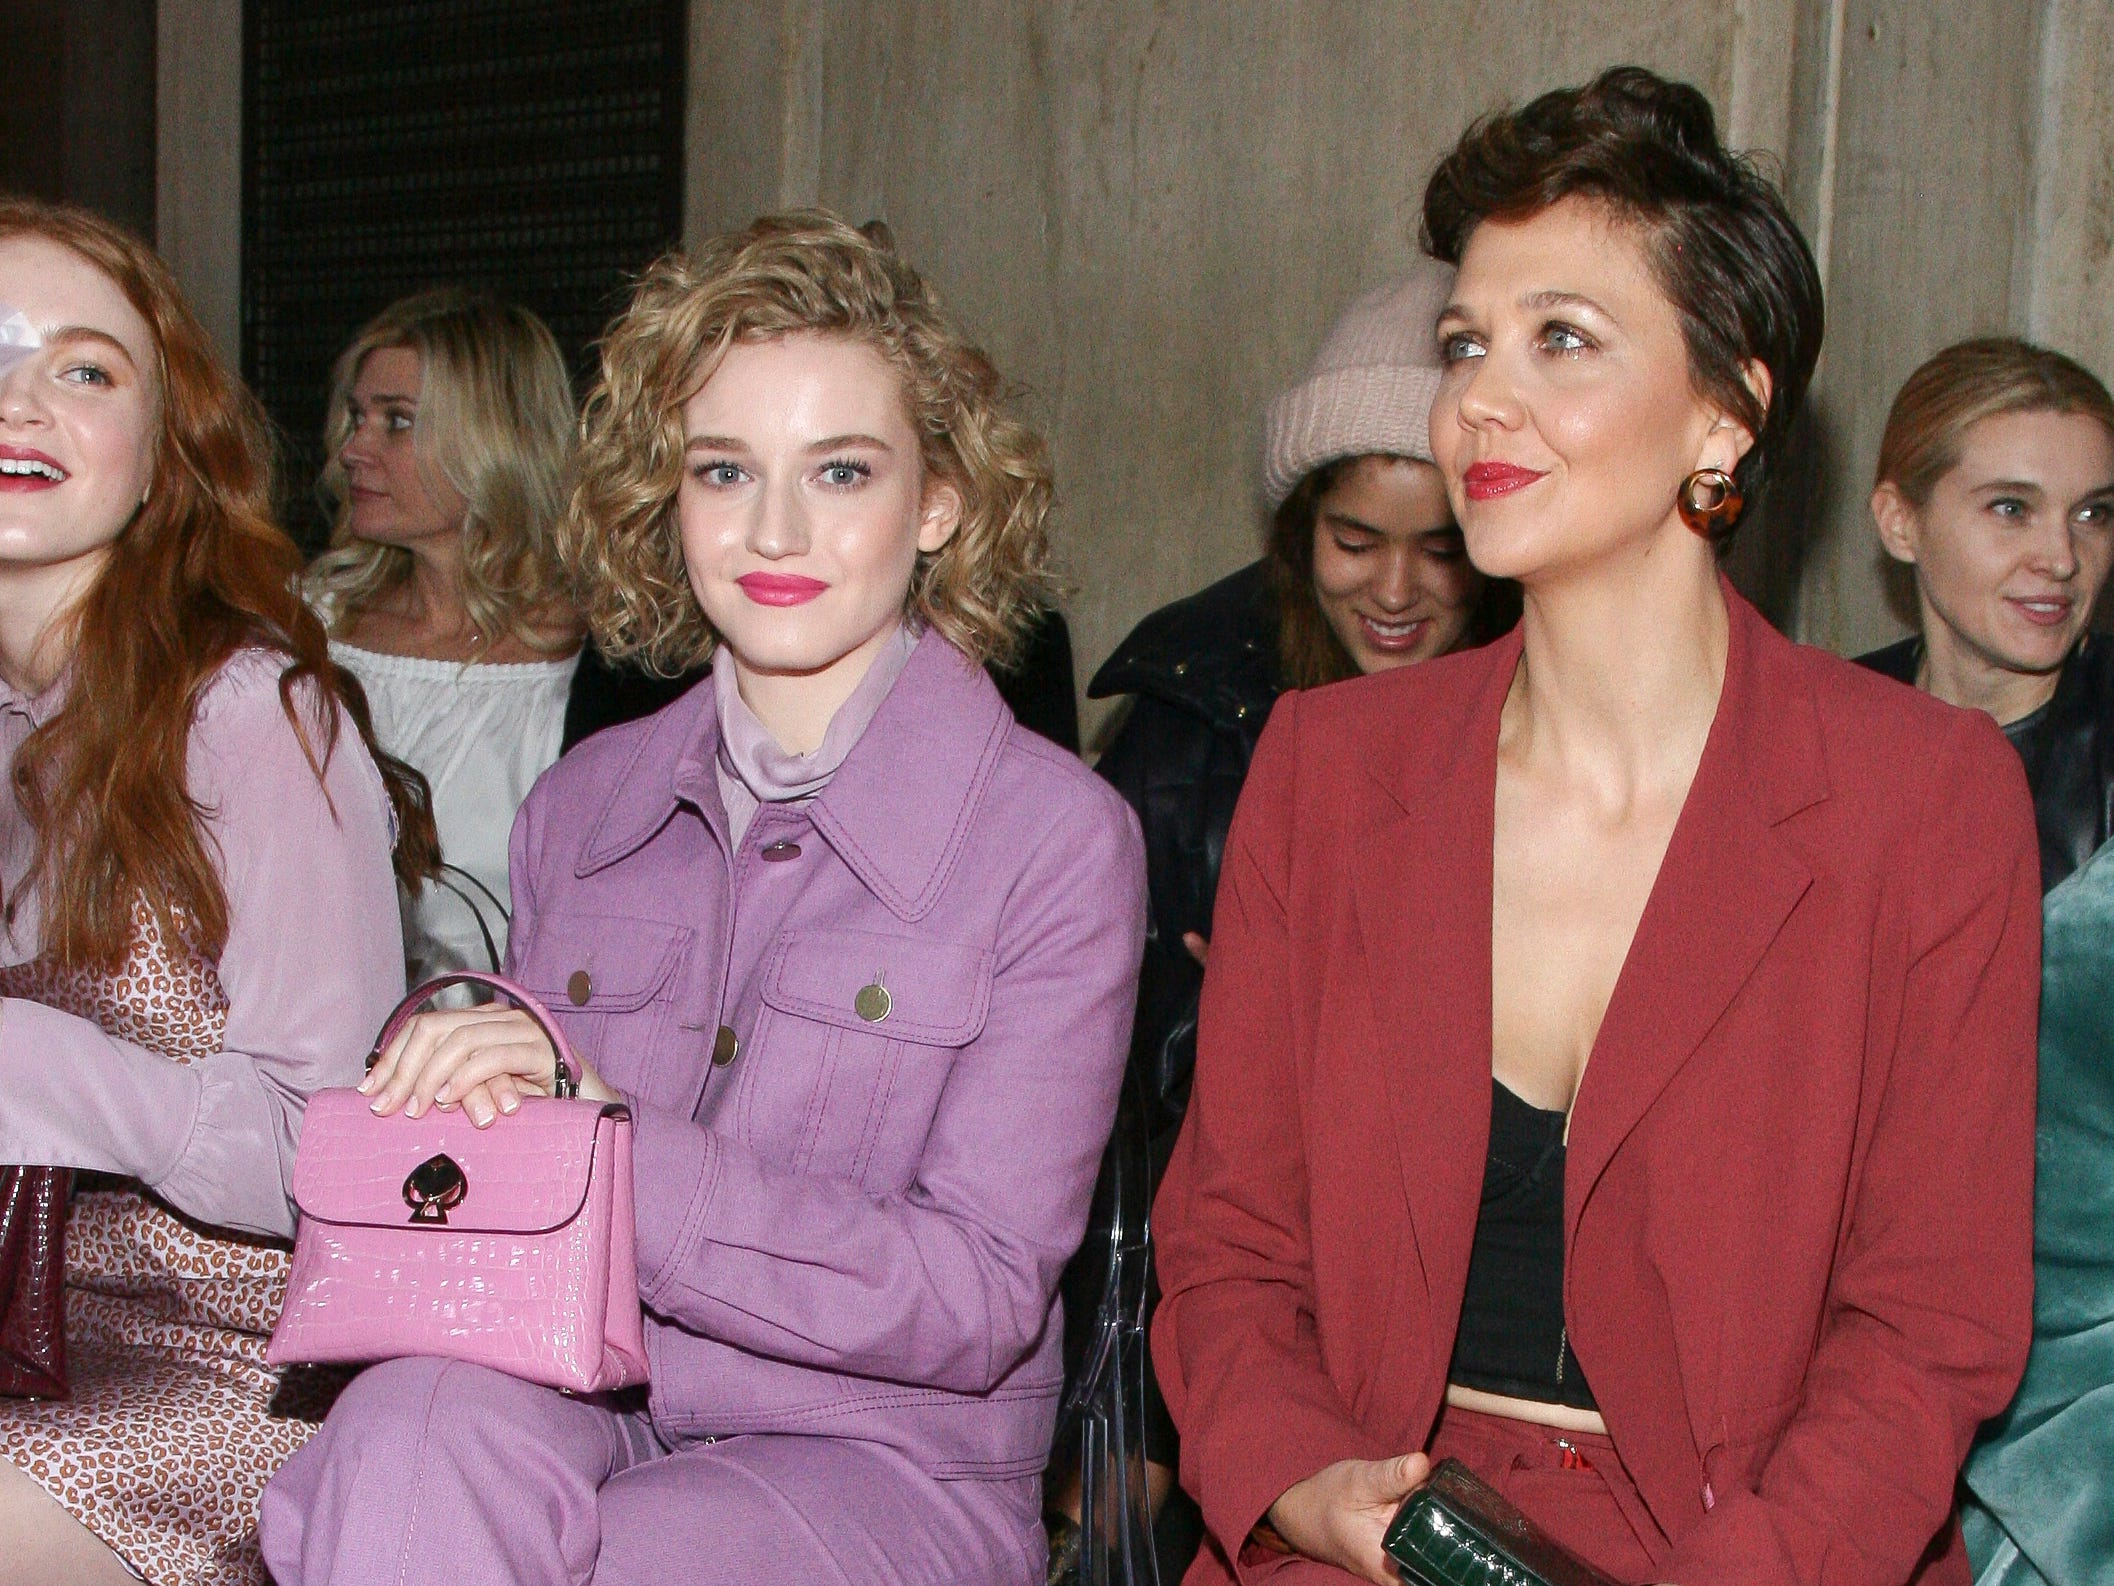 Julia Garner, left, and Maggie Gyllenhaal, right, attend the NYFW Fall/Winter 2019 Kate Spade fashion show at the Cipriani's on Friday, Feb. 8, 2019, in New York. (Photo by Andy Kropa/Invision/AP) ORG XMIT: NYAK101